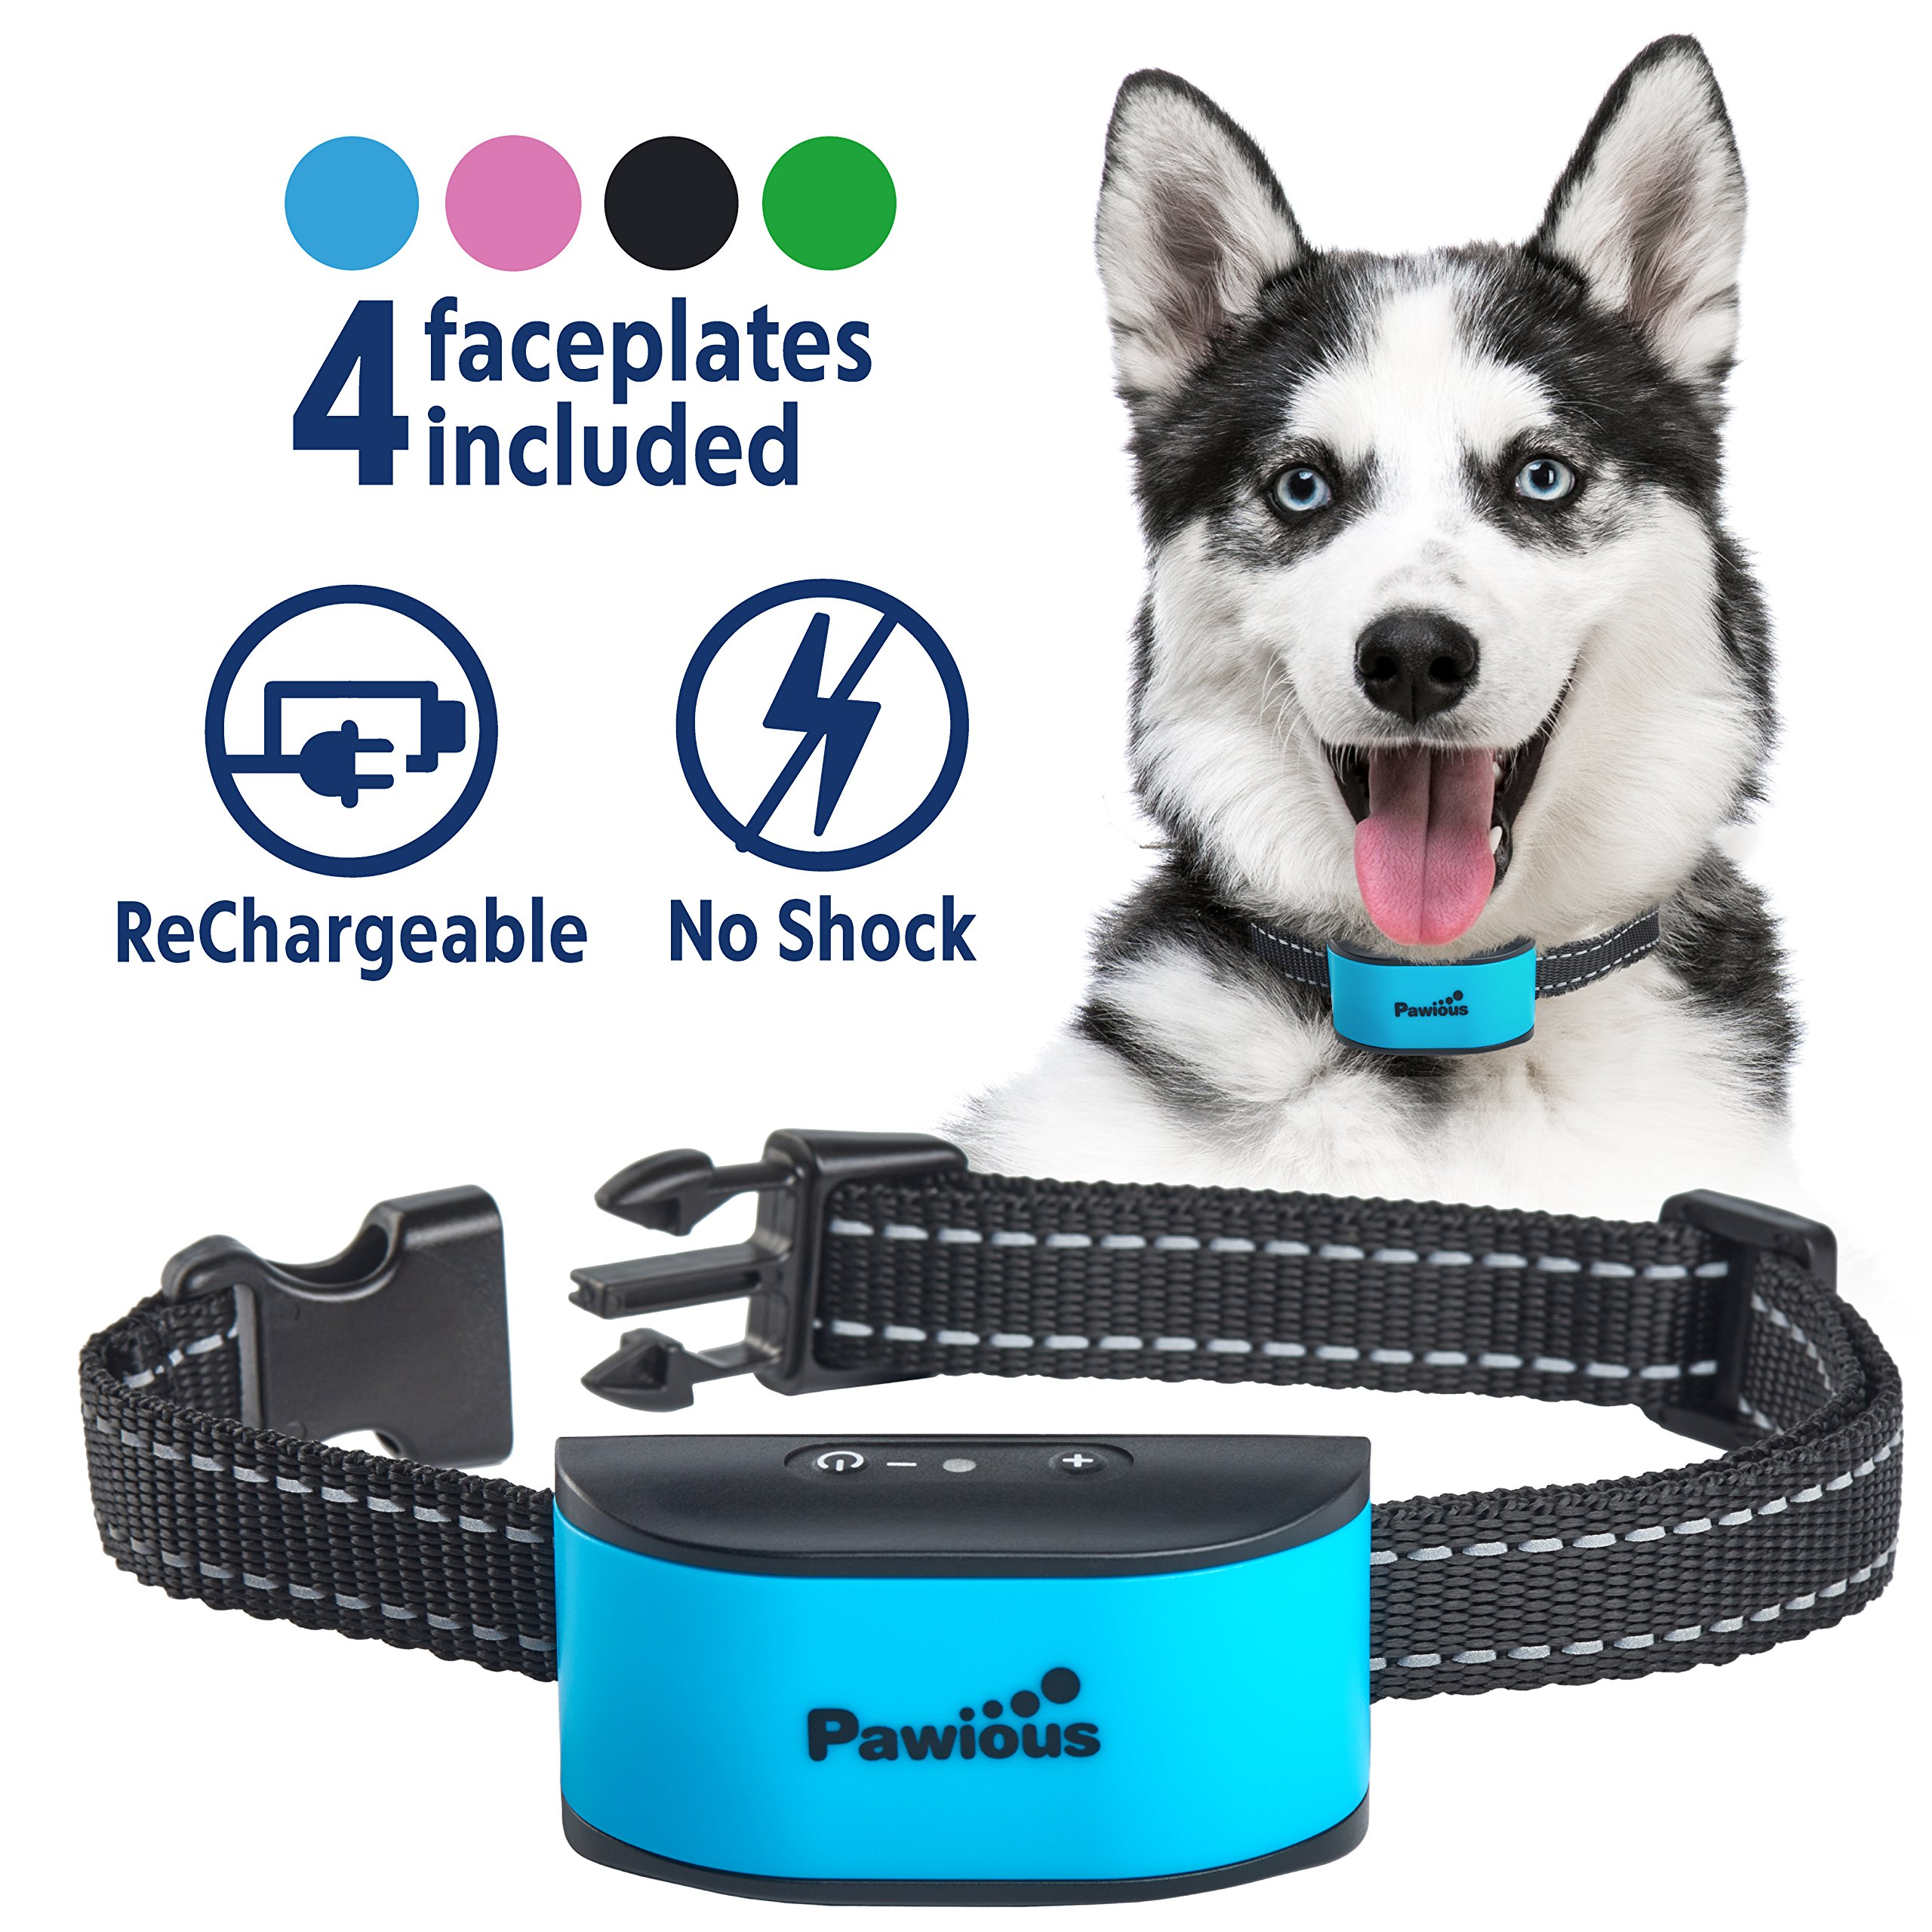 Pawious Bark Collar [Upgraded 2018] - Humane No Shock Rechargeable Anti Barking Collar for Small and Medium Dogs - 4 Color Faceplates, No Harmful Prongs for Dog, Sound, Vibration, 7 Sensitivity Levels